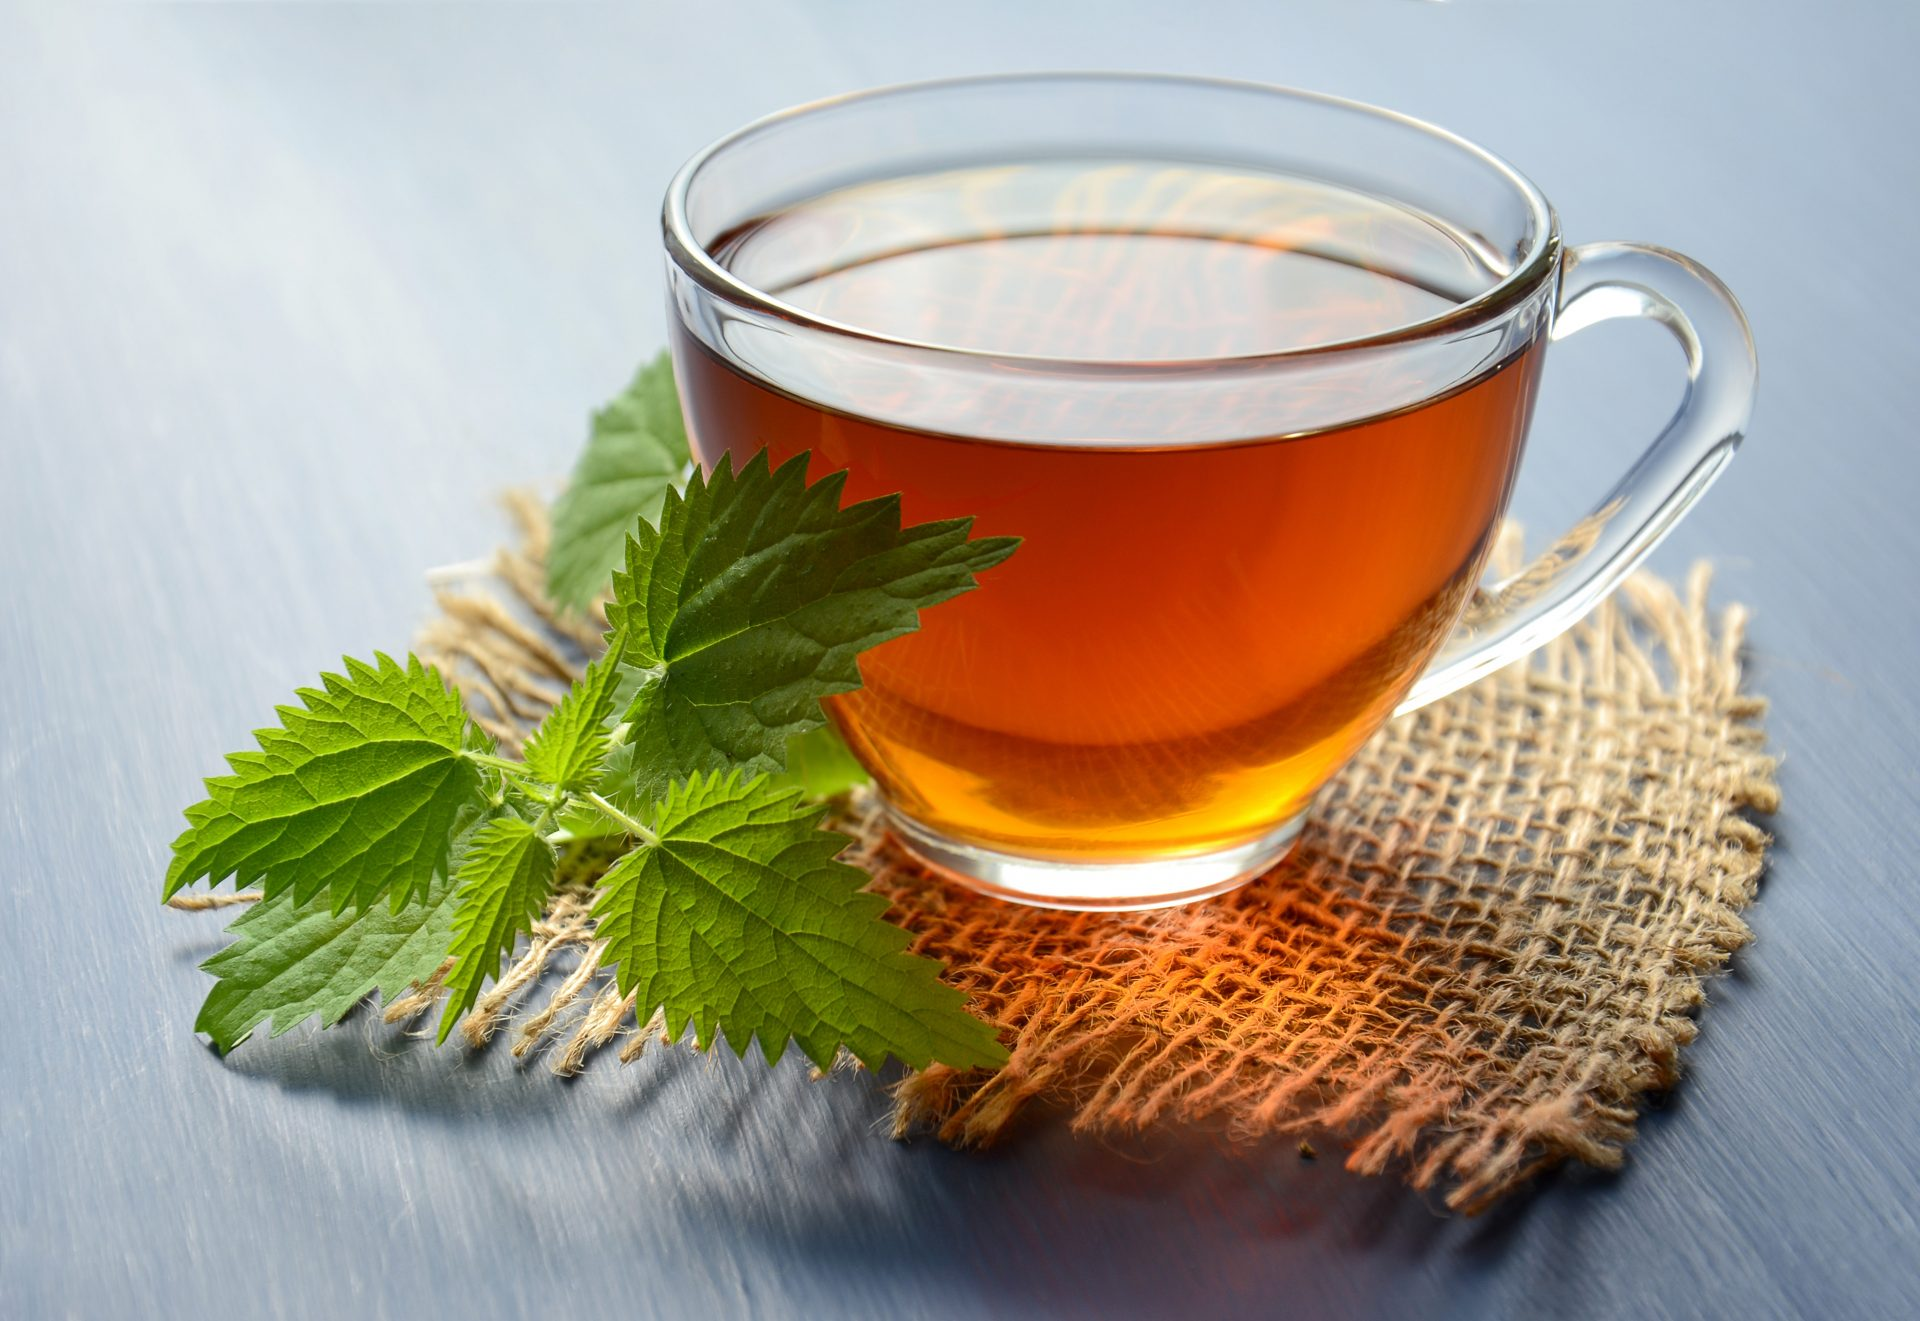 Cinnamon Green Tea - American Institute for Cancer Research